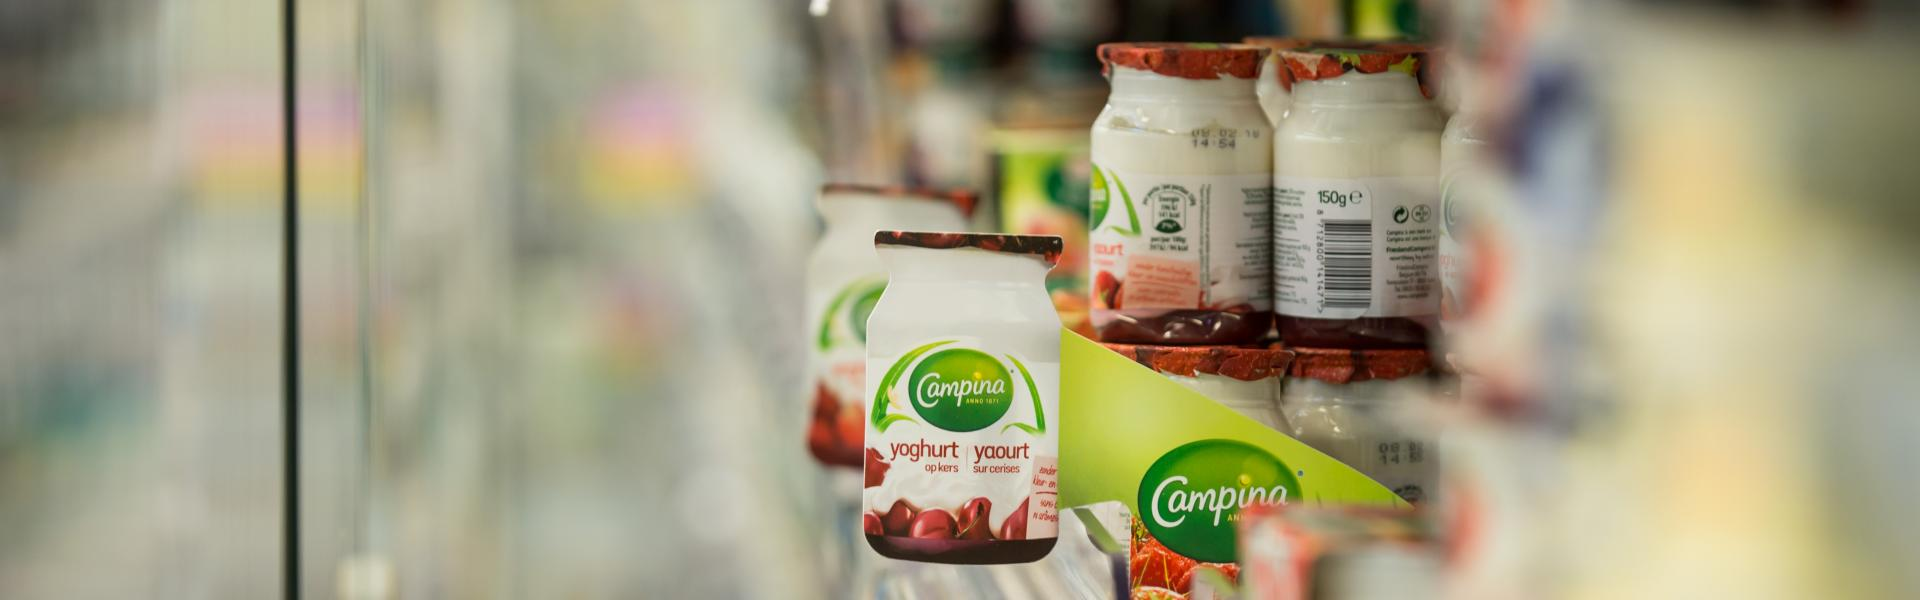 In-store communication Campina